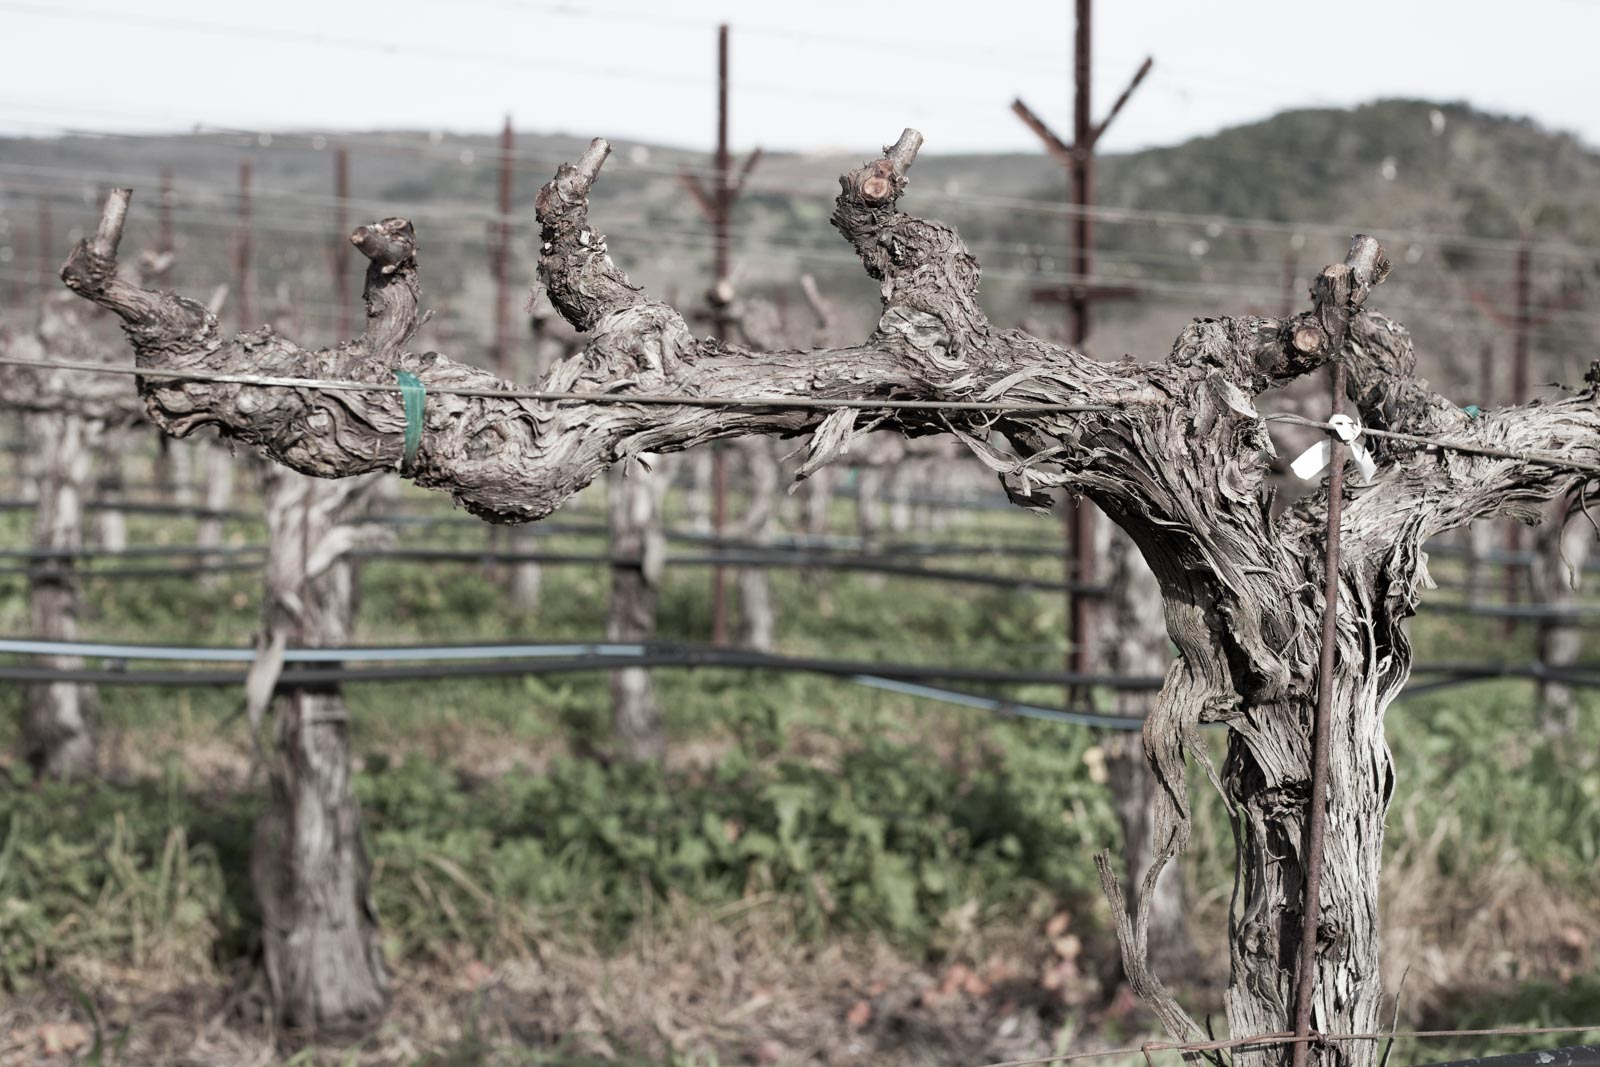 Dormant Cabernet Sauvignon vines in winter at the Family Home Vineyard, Gamble Family Estates, Napa, California. ©Kevin Day/Opening a Bottle